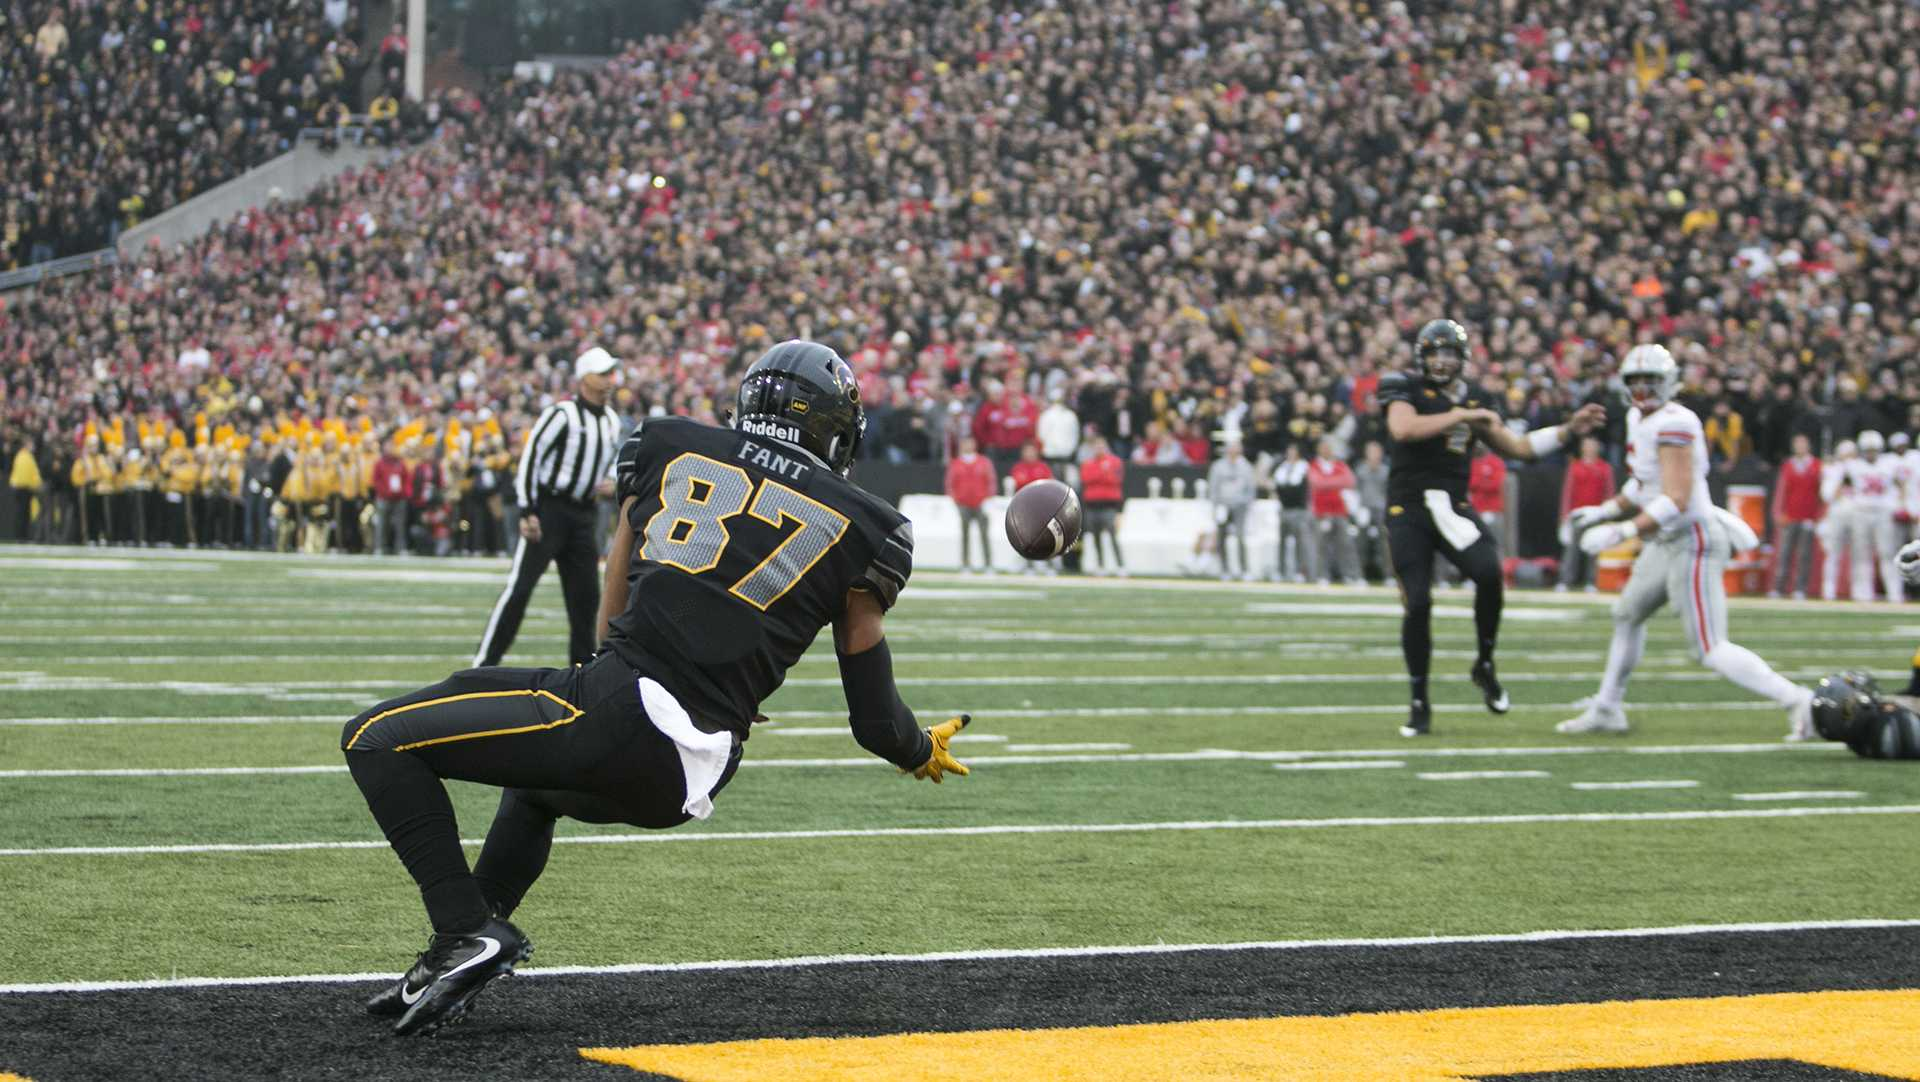 Iowa tight end Noah Fant catches a touchdown pass during the Iowa/Ohio State football game in Kinnick Stadium on Saturday, Nov. 4, 2017. The Hawkeyes defeated the Buckeyes in a storming fashion, 55-24. (Joseph Cress/The Daily Iowan)